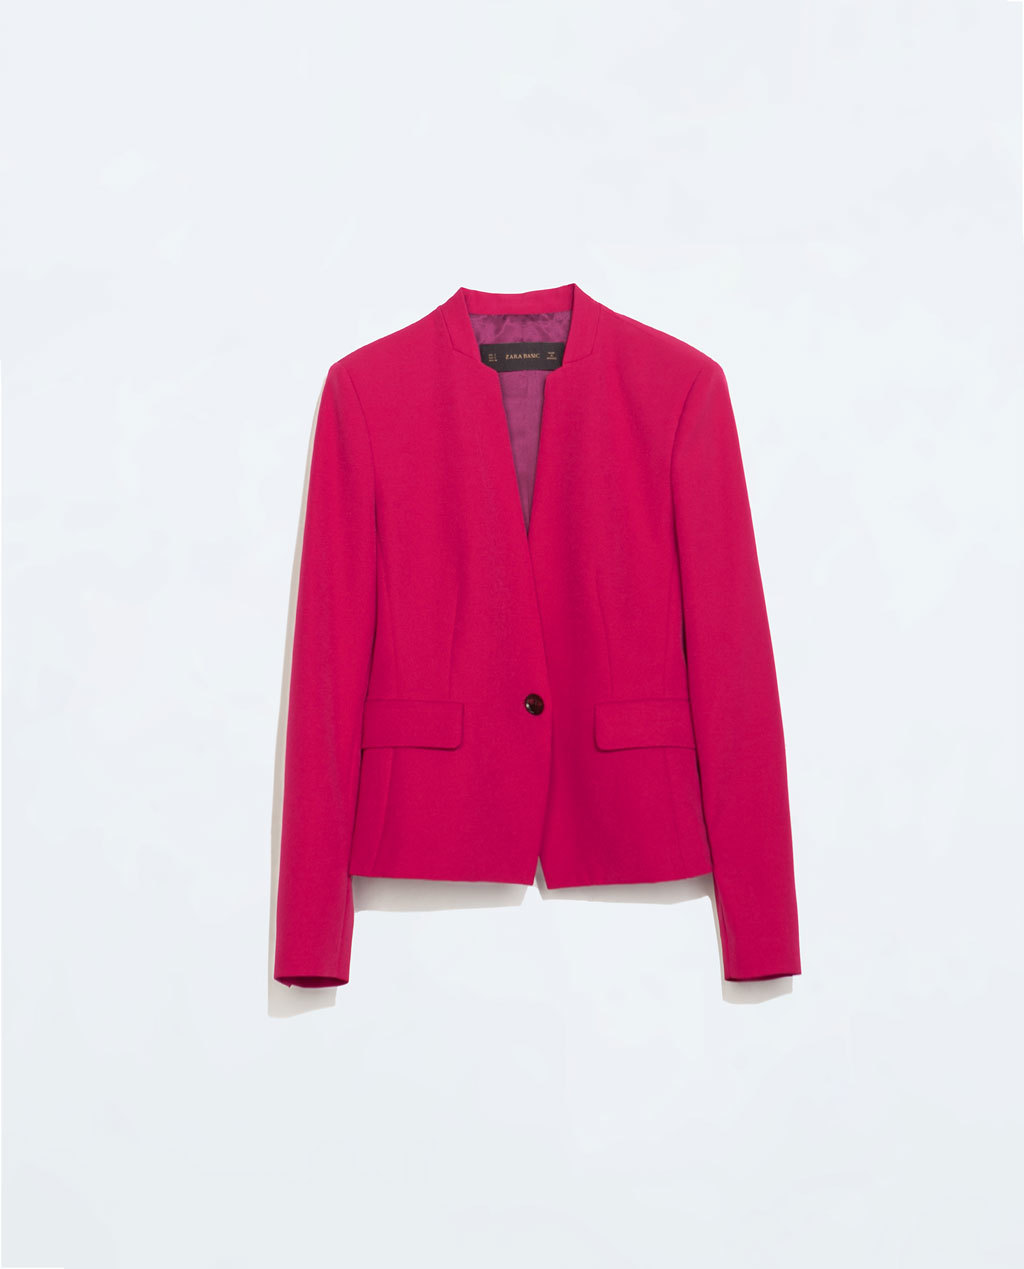 Blazer With Zips - pattern: plain; style: single breasted blazer; collar: round collar/collarless; predominant colour: hot pink; occasions: evening, creative work; length: standard; fit: tailored/fitted; fibres: polyester/polyamide - stretch; sleeve length: long sleeve; sleeve style: standard; texture group: crepes; collar break: low/open; pattern type: fabric; season: s/s 2014